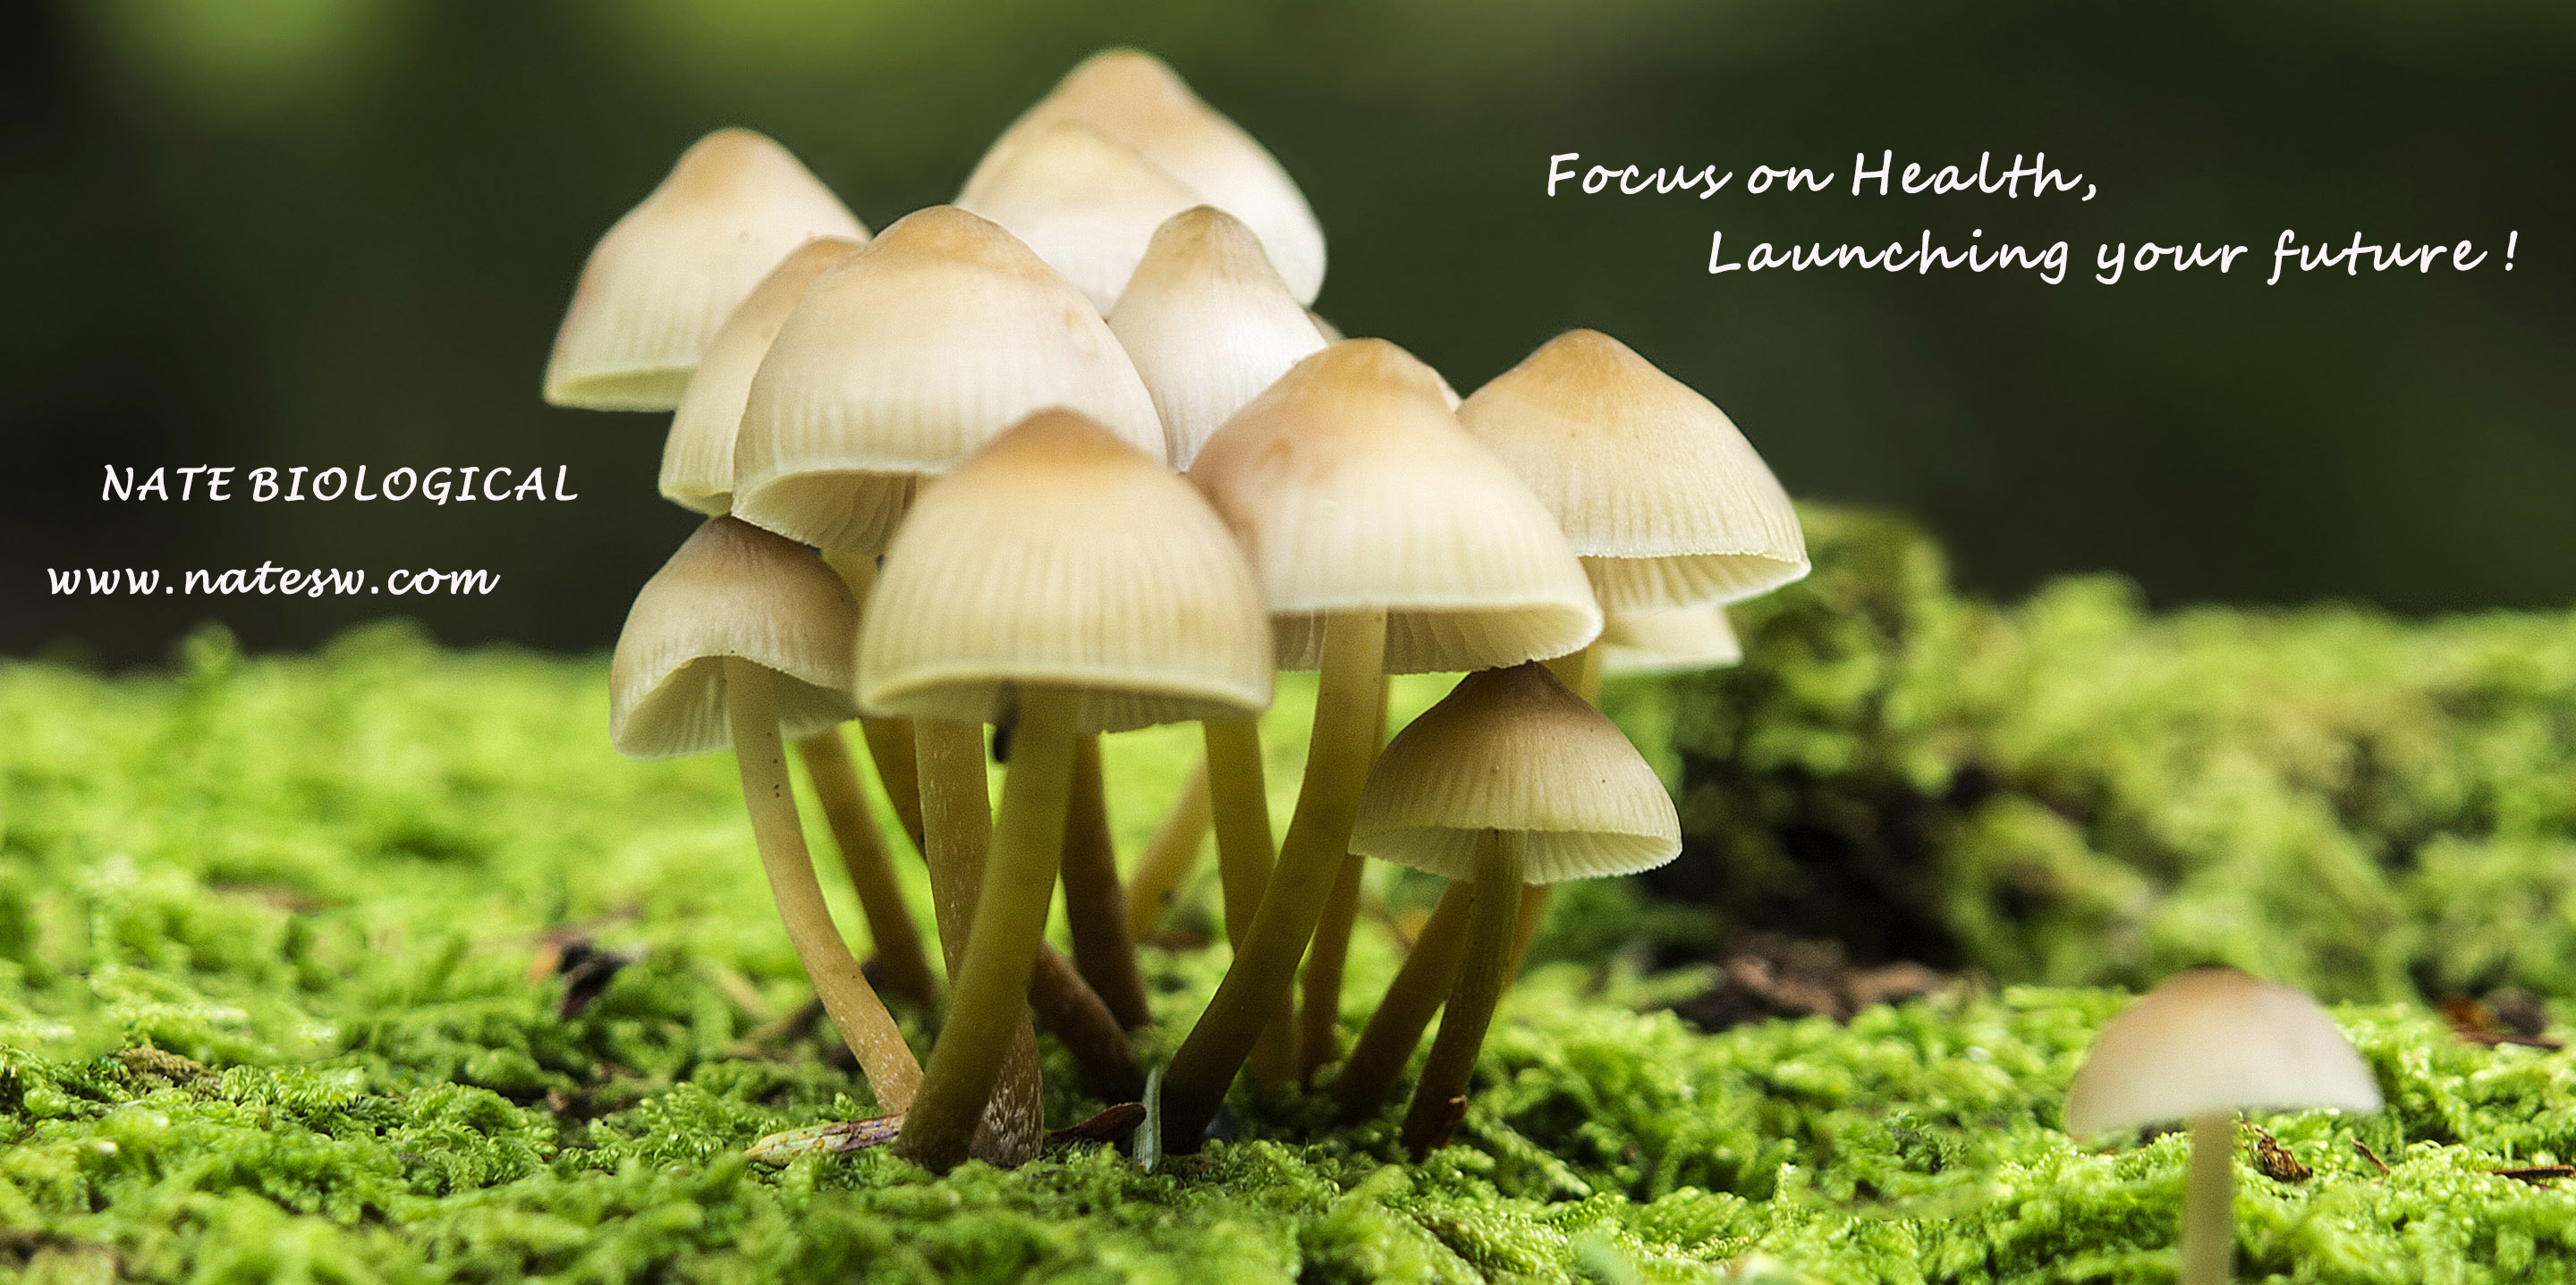 Fungal polysaccharides can be targeted to what diseases